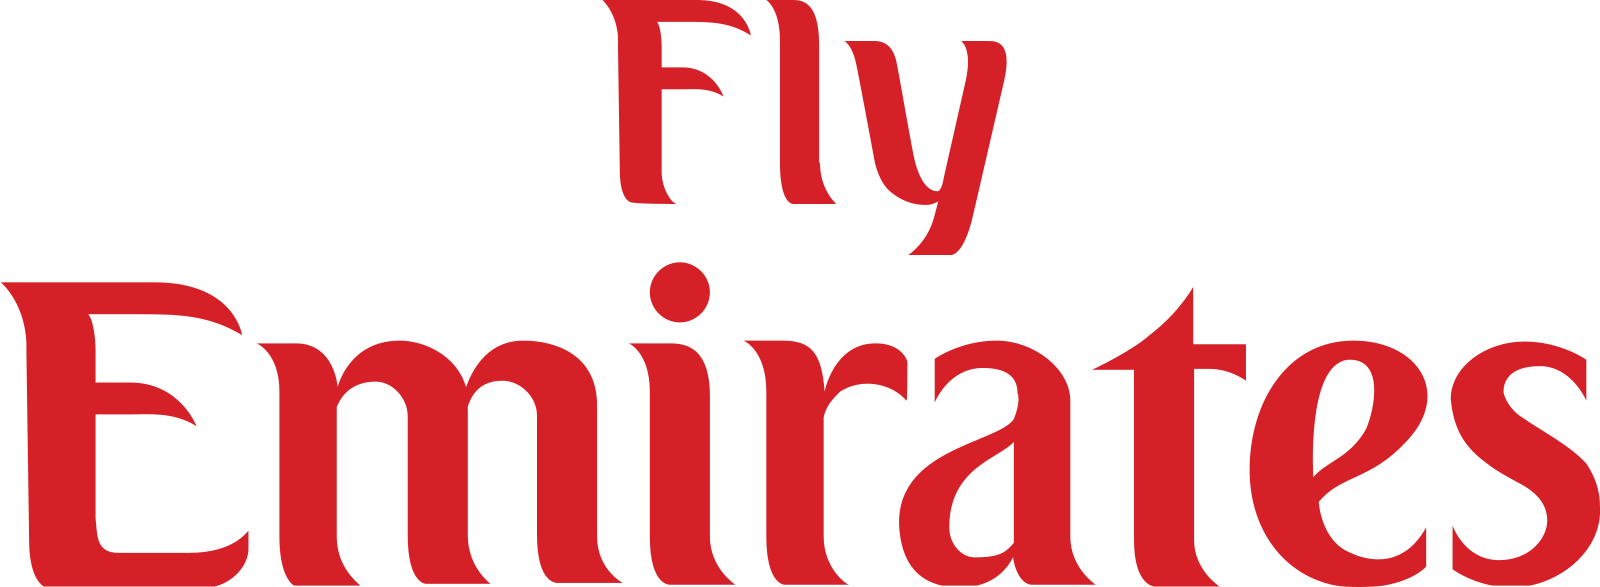 fly emirates logo 4 - Fly Emirates Logo